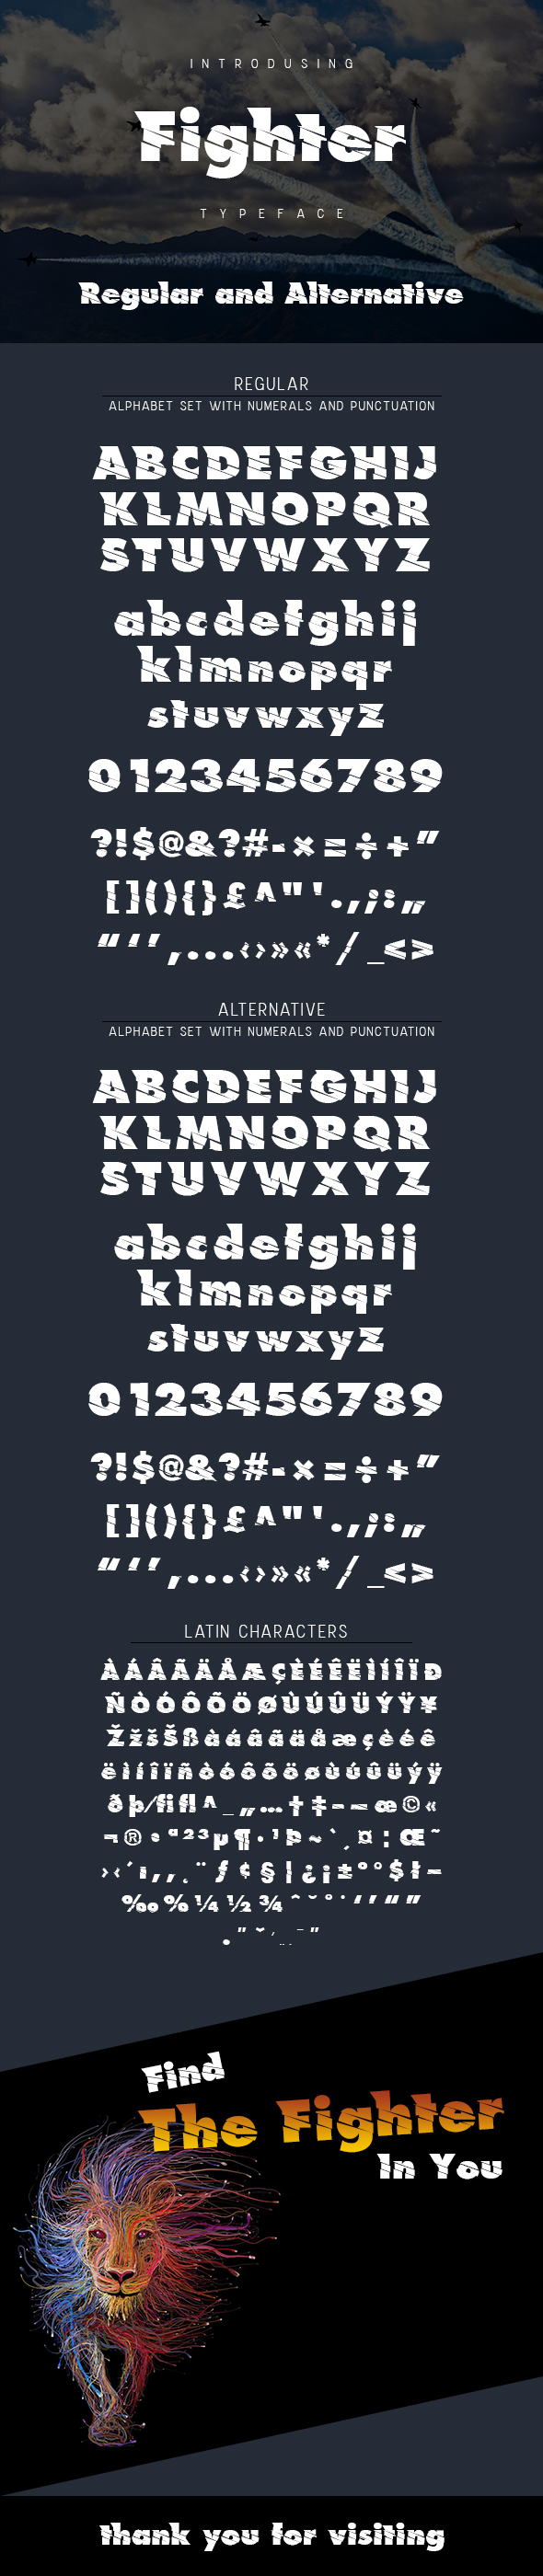 Fighter Typeface - Decorative Fonts